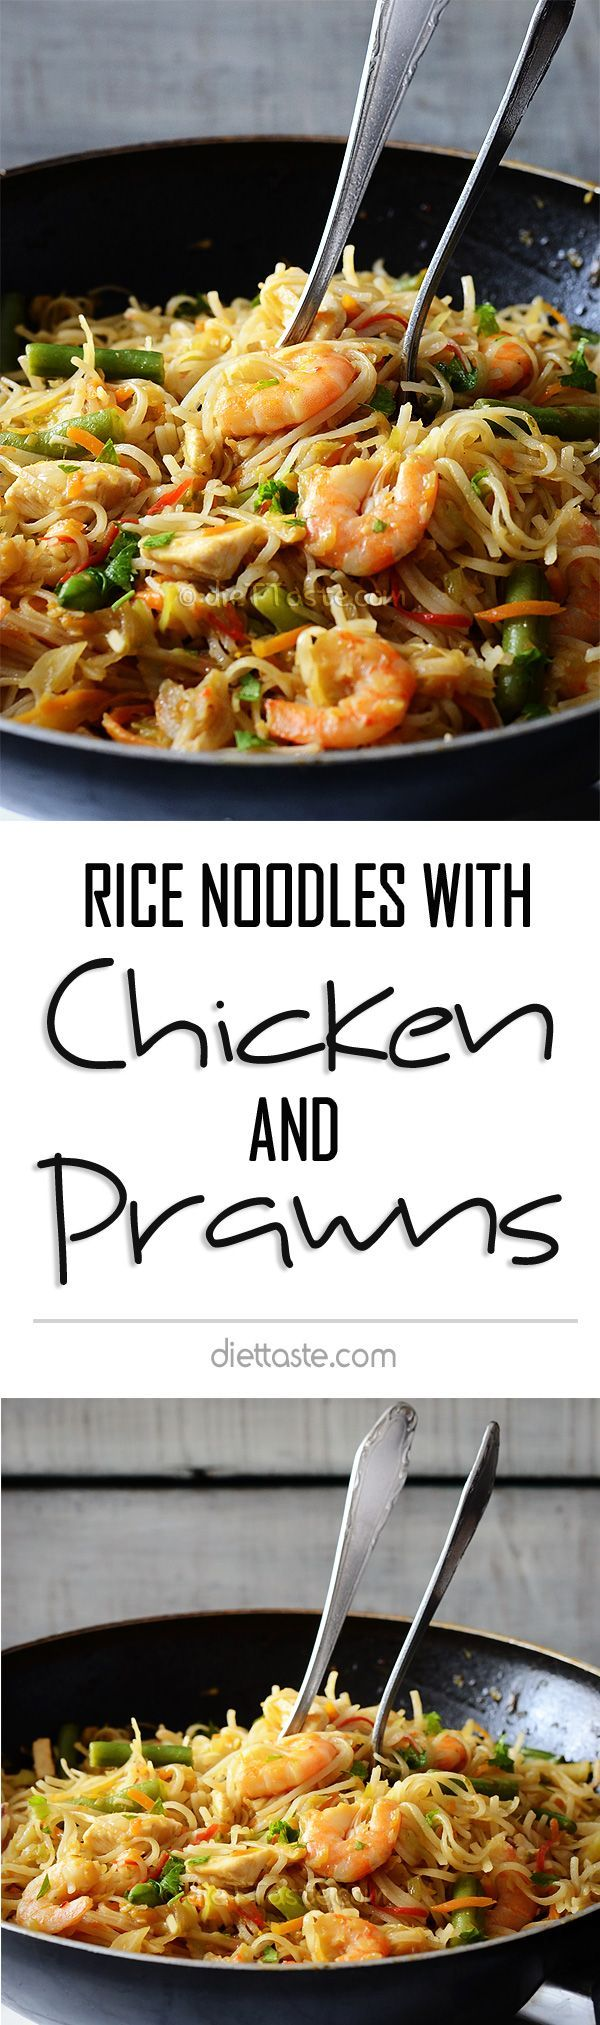 Rice Noodles with Chicken and Prawns - healthy stir-fry dish, full of vegetables, easily prepared for lunch or dinner - diettaste.com